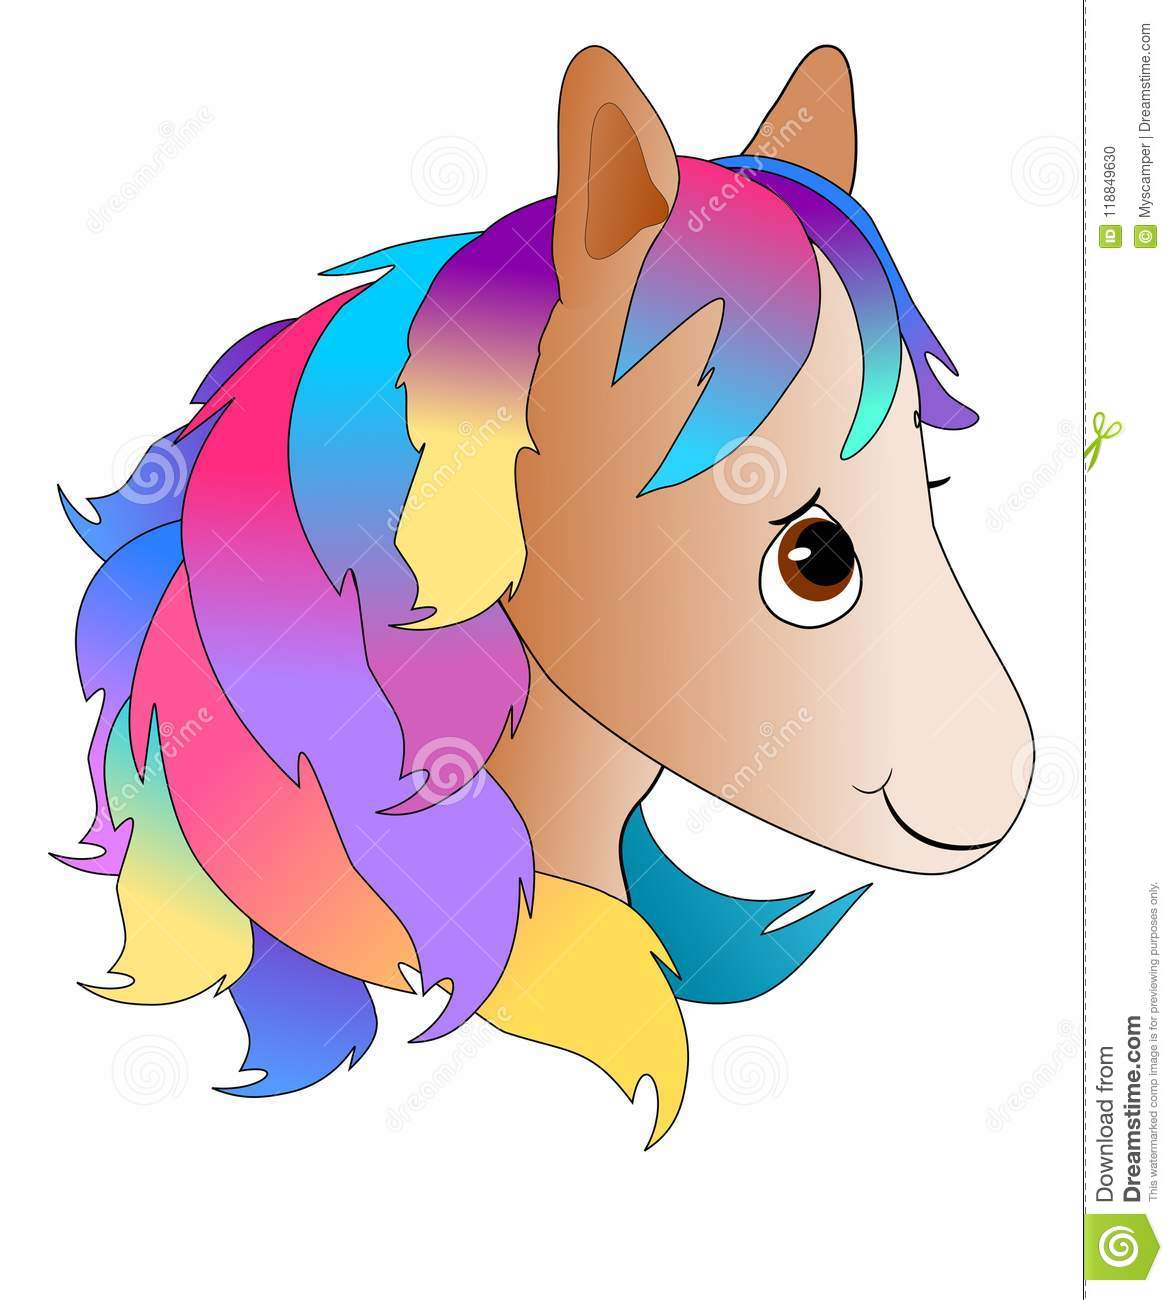 Cute Cartoon Pony Head With Colorful Mane Stock Illustration Illustration Of Baby Closeup 118849630